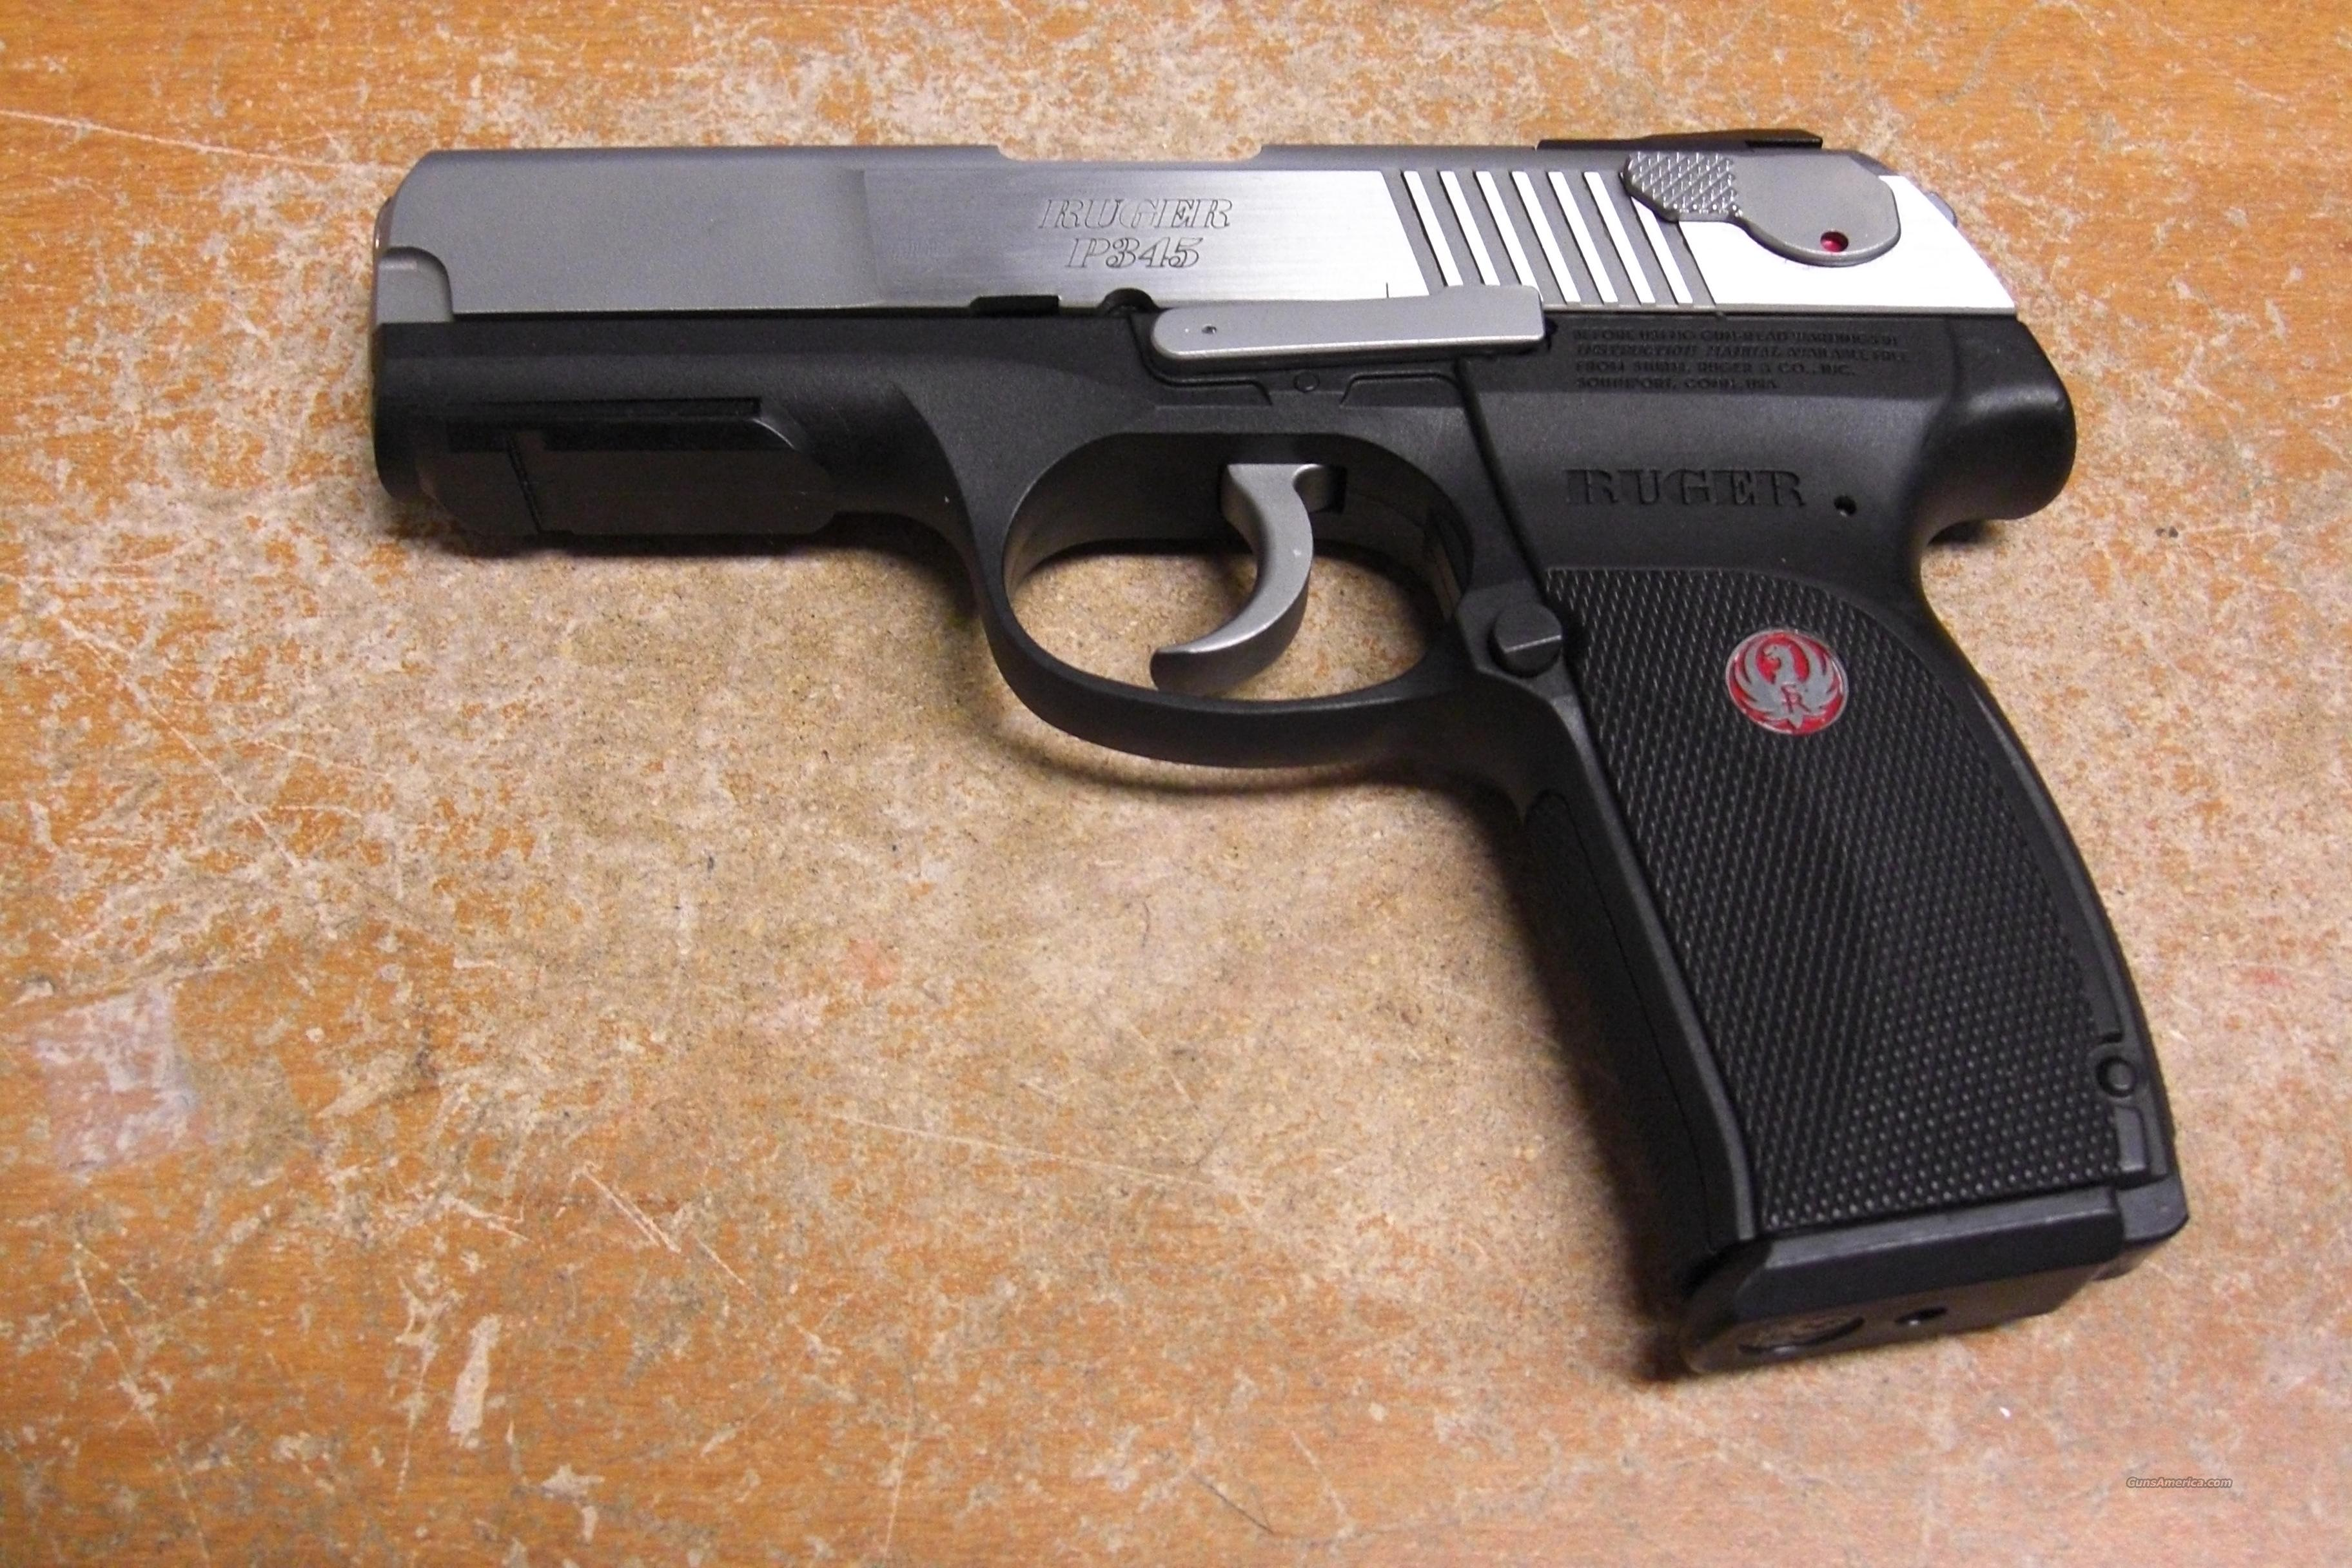 P345  2-tone stainless  Guns > Pistols > Ruger Semi-Auto Pistols > P-Series